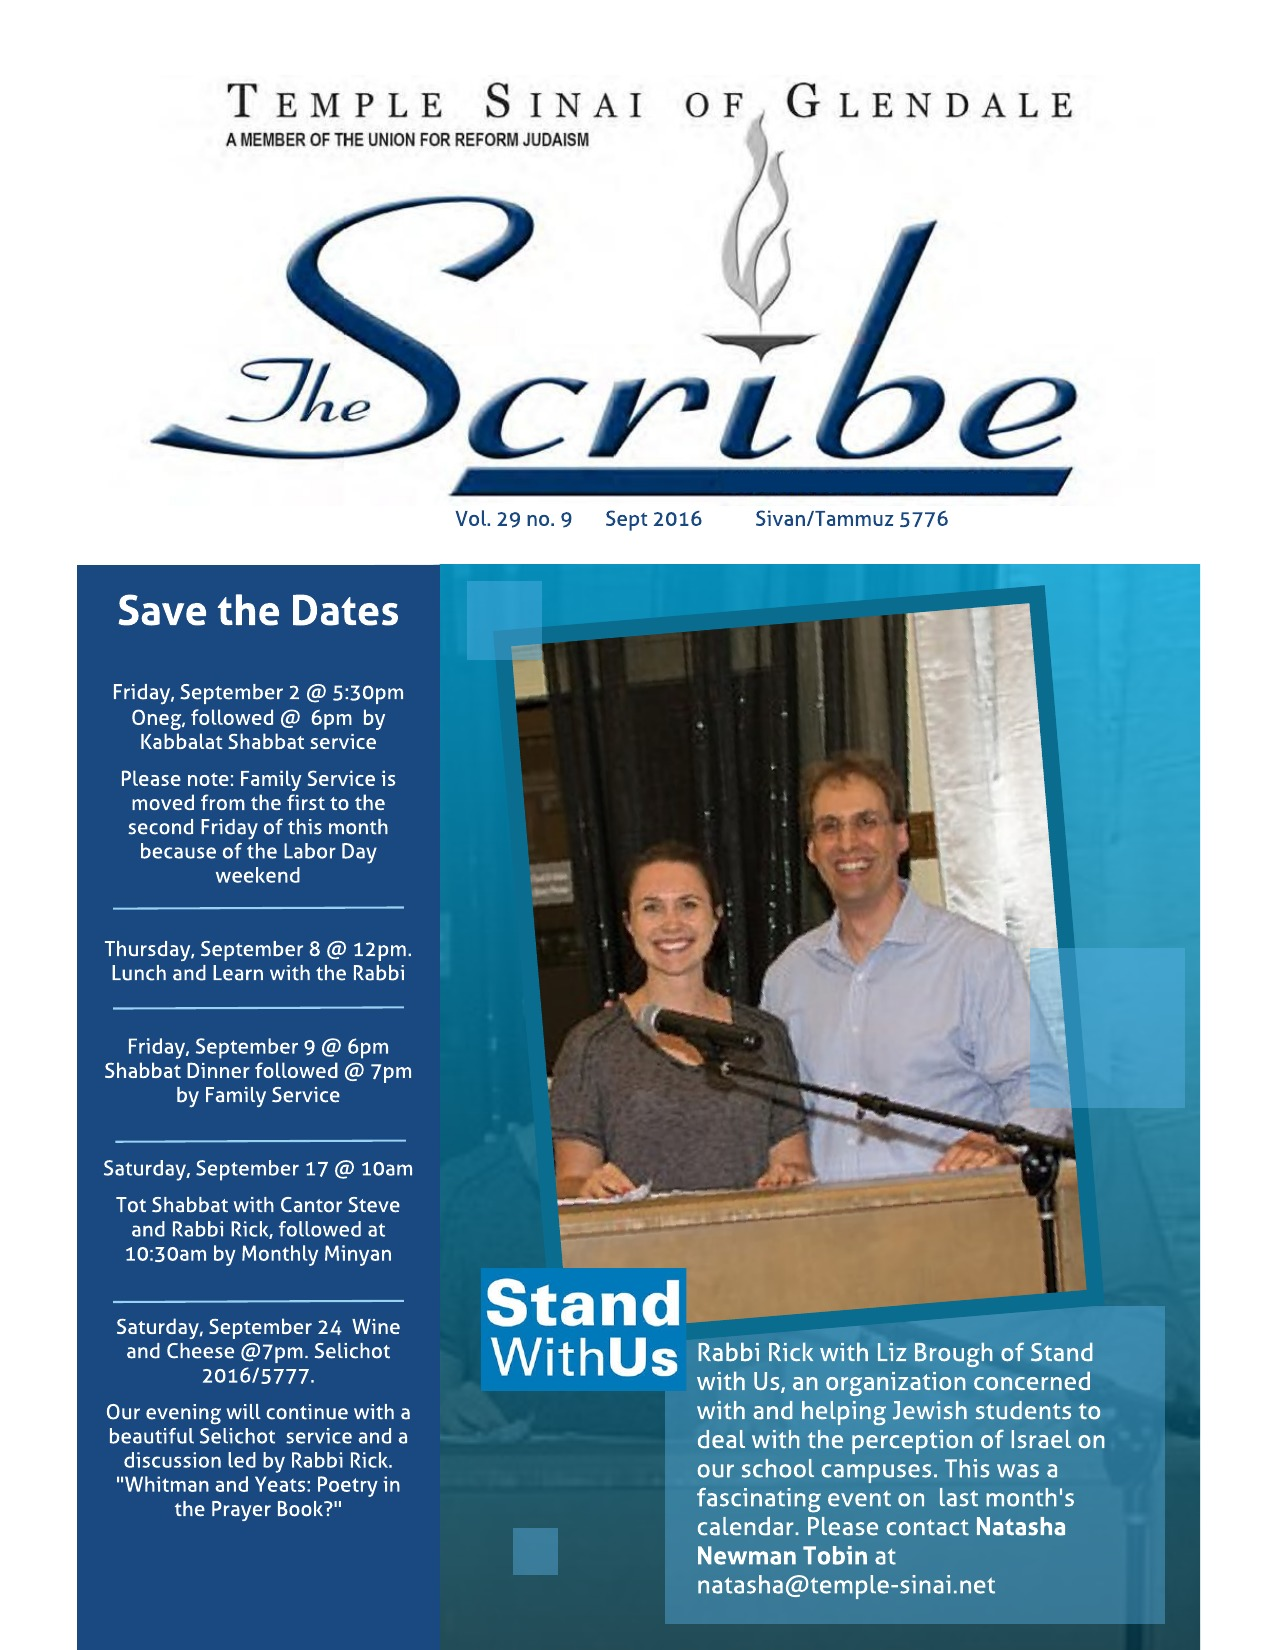 SCRIBE Sept 2016 Front Page